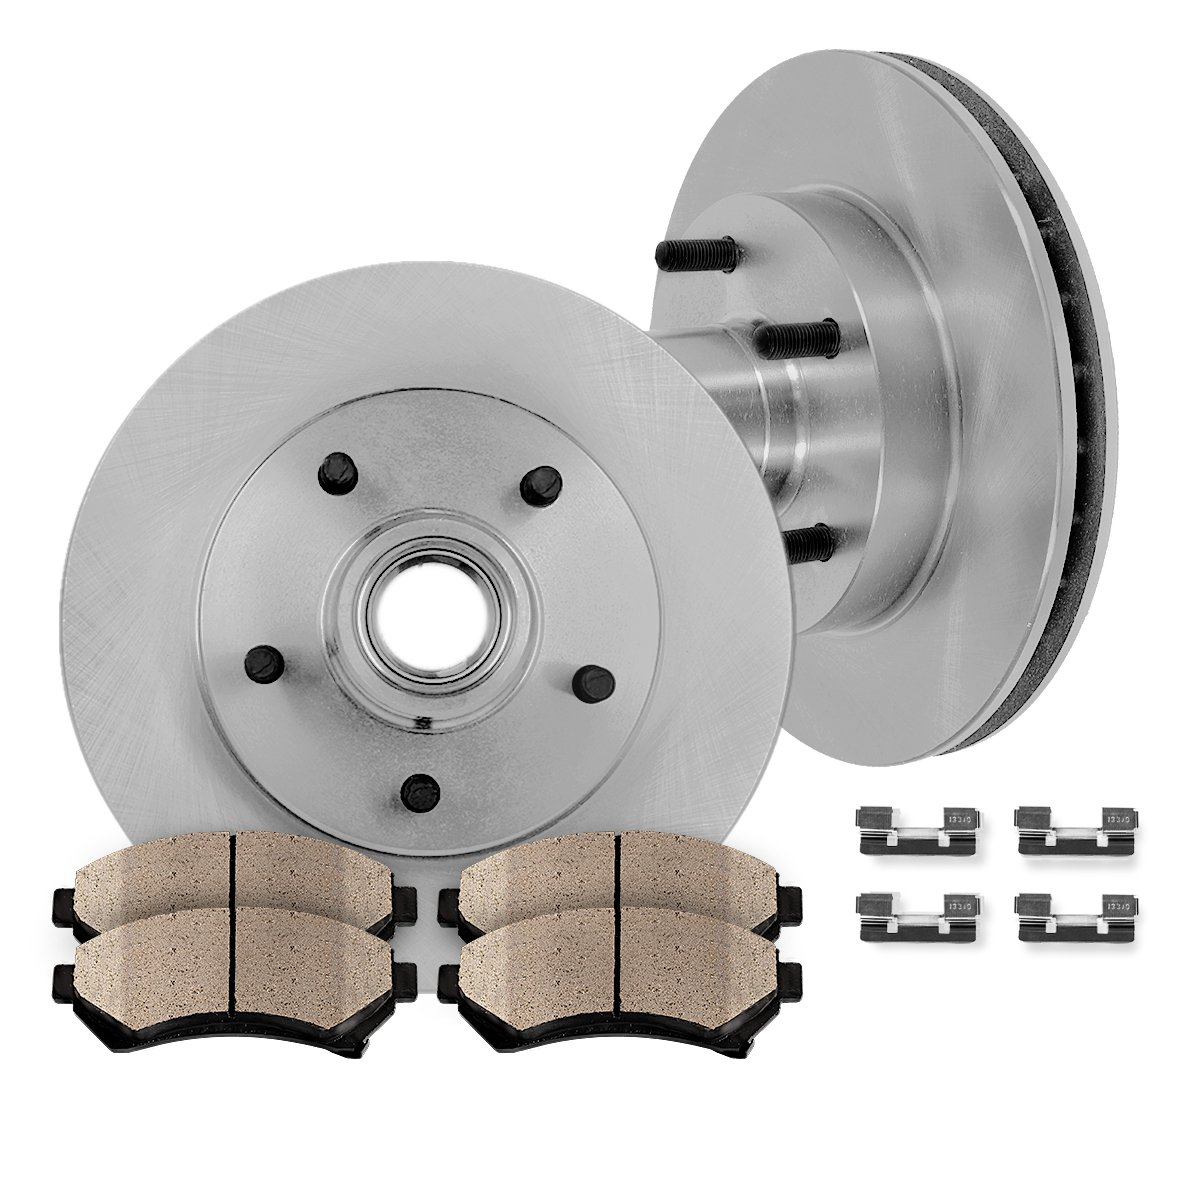 [ RWD ] FRONT 308 mm Premium OE 5 Lug [2] Brake Disc Rotors + [4] Ceramic Brake Pads + Clips